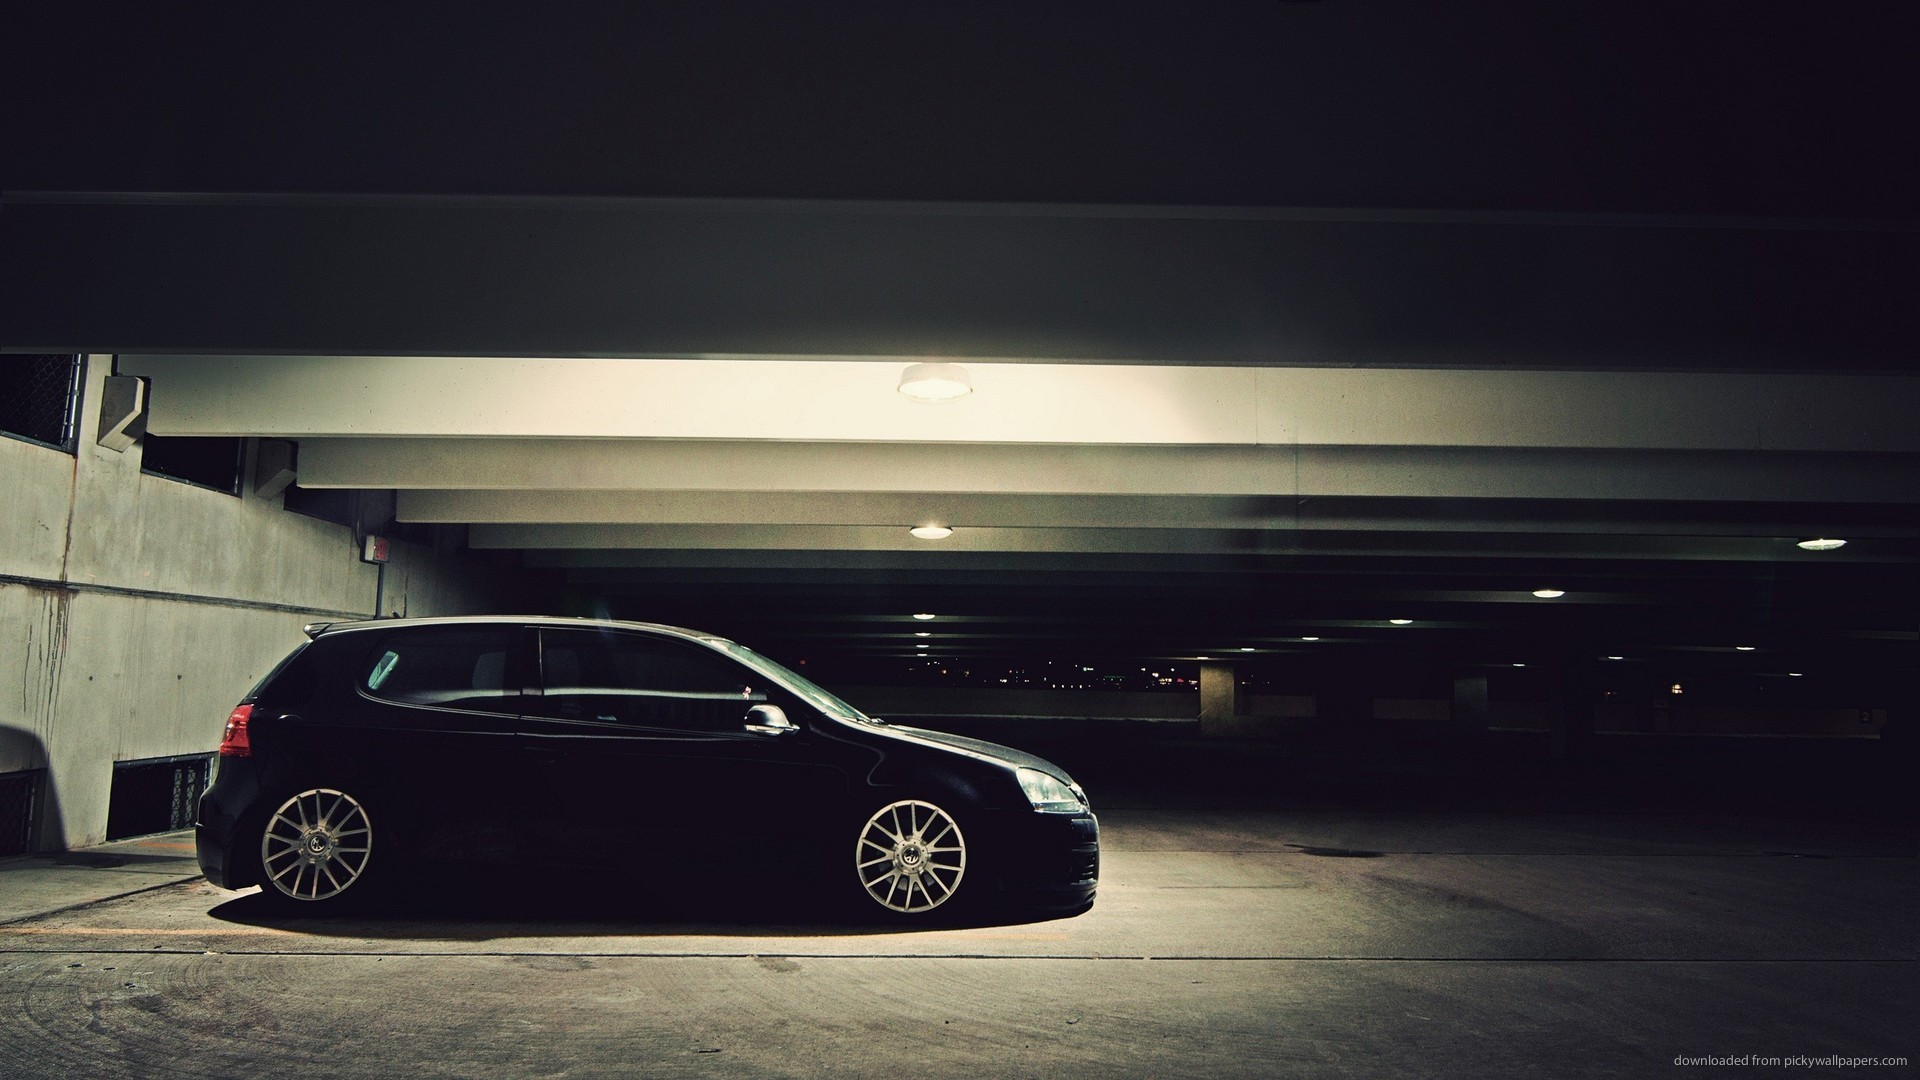 Black Volkswagen Golf Stance Sideview picture